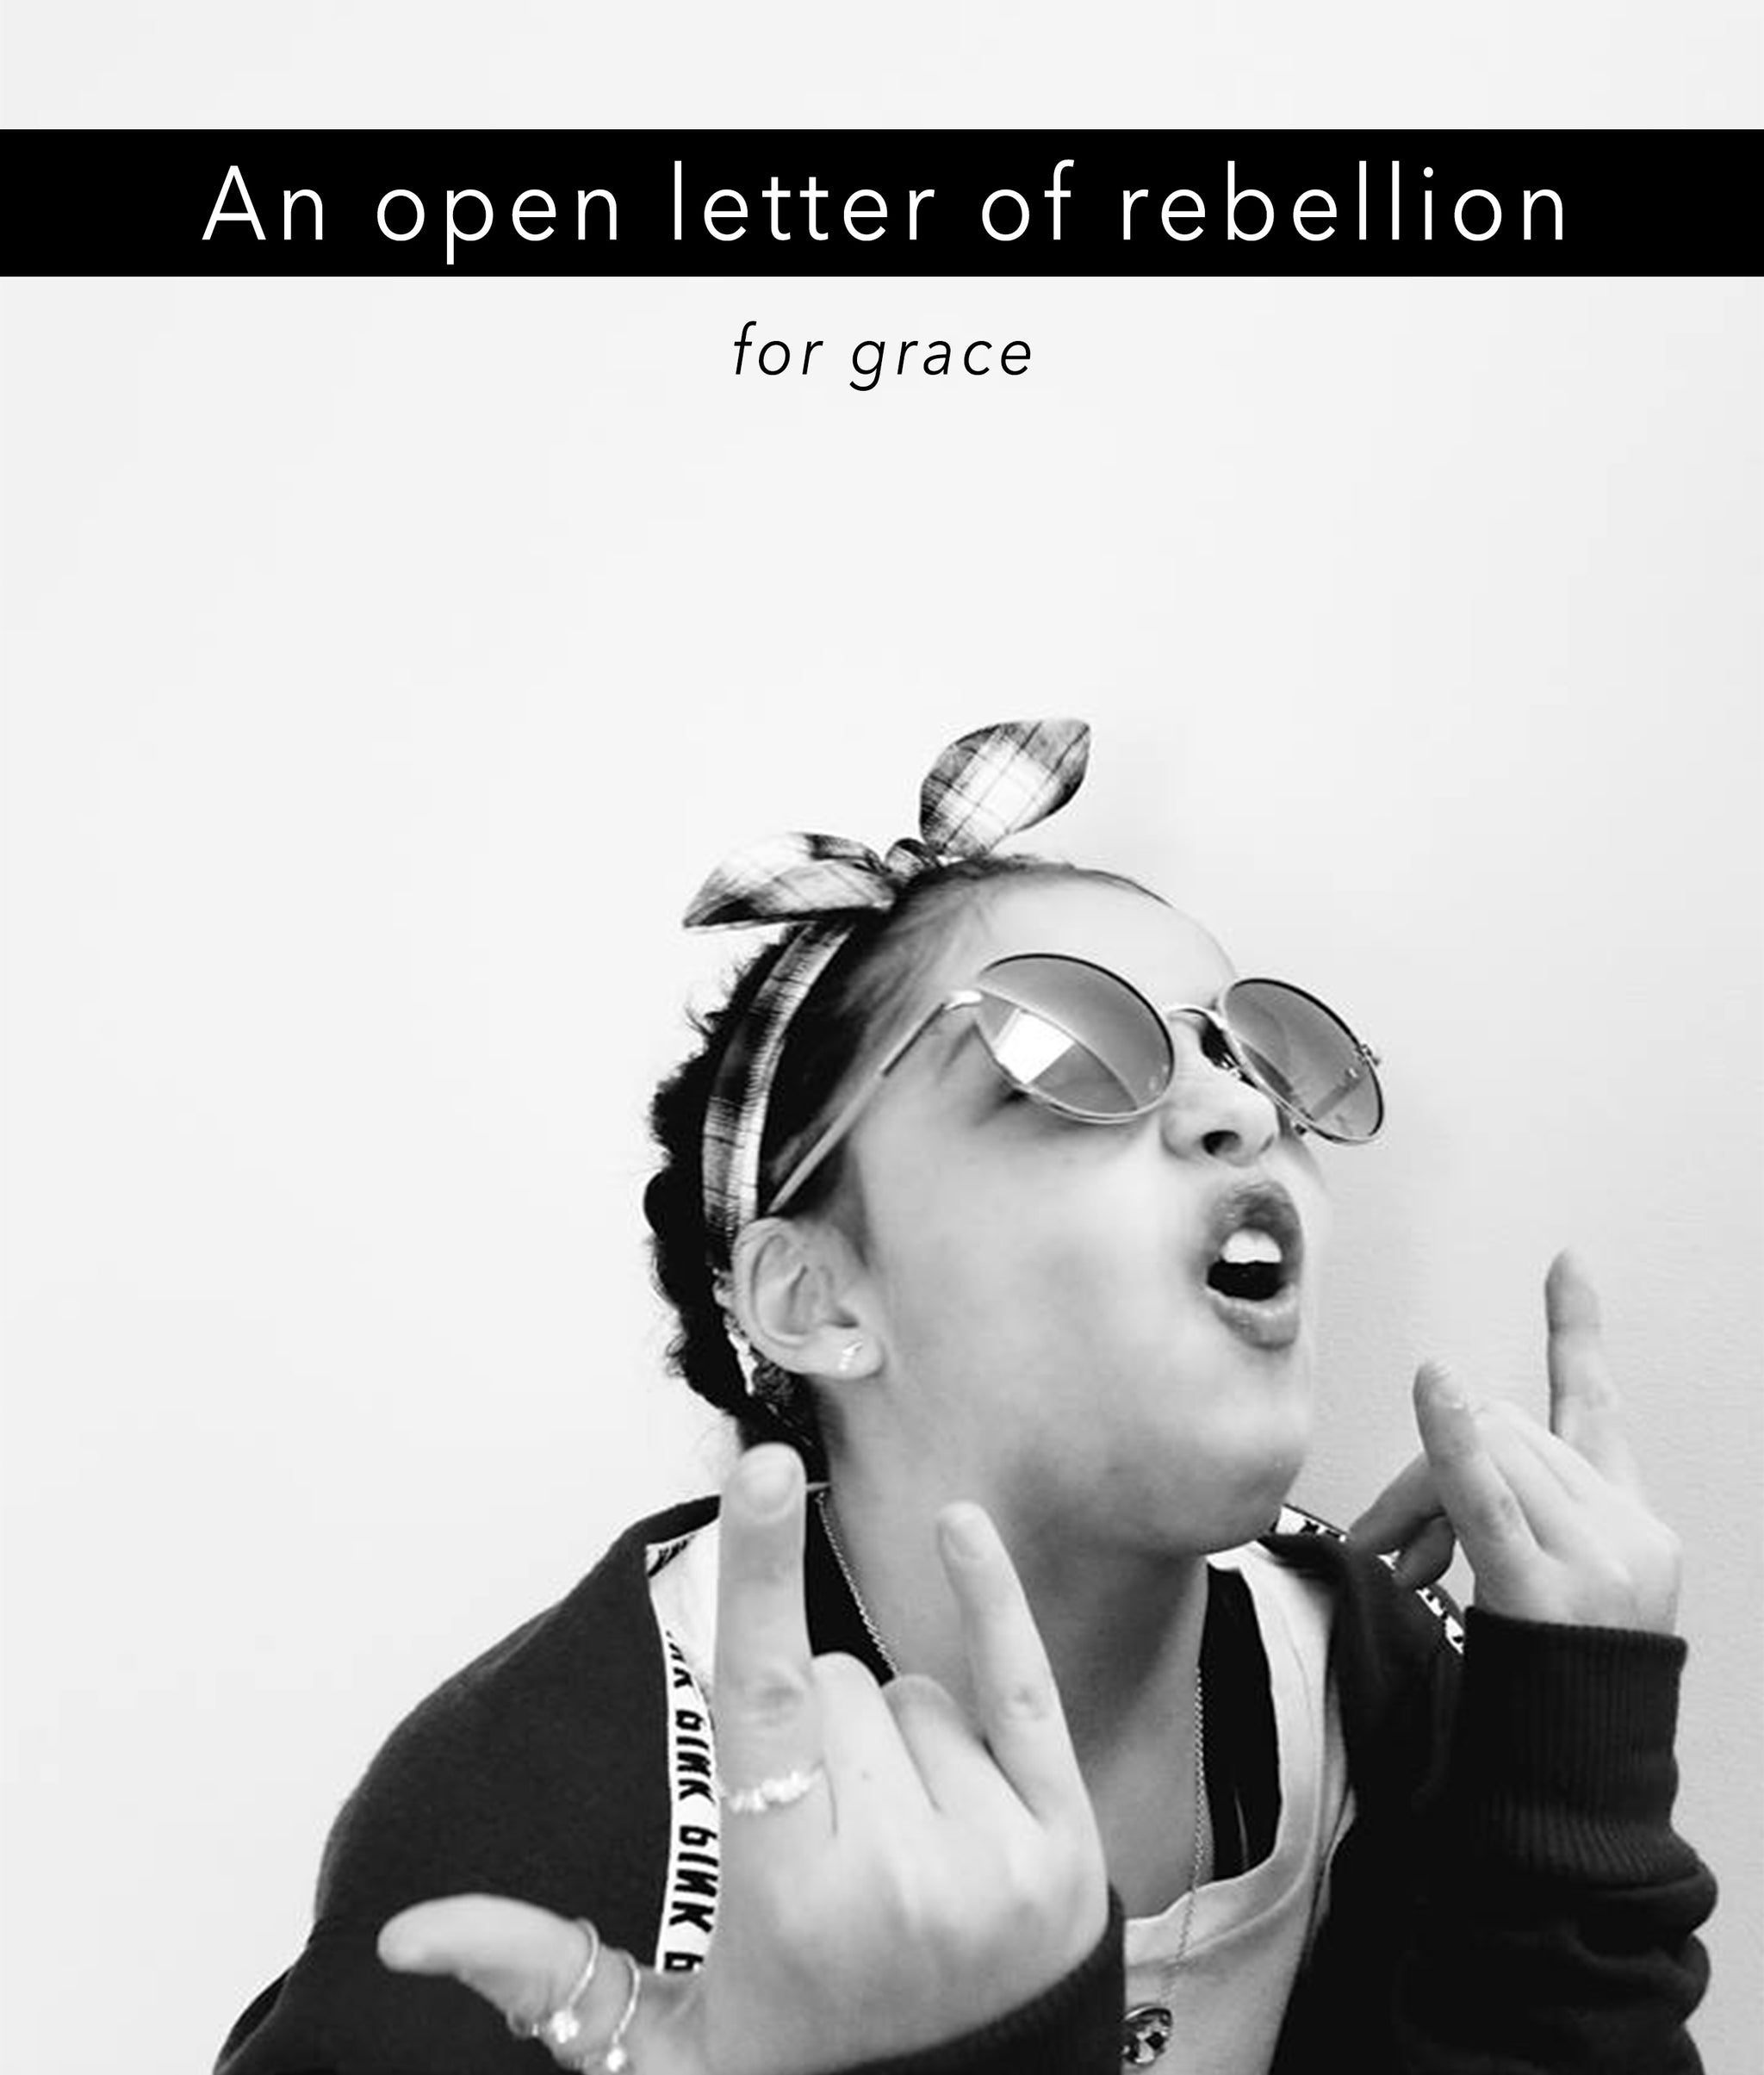 An Open Letter of Rebellion